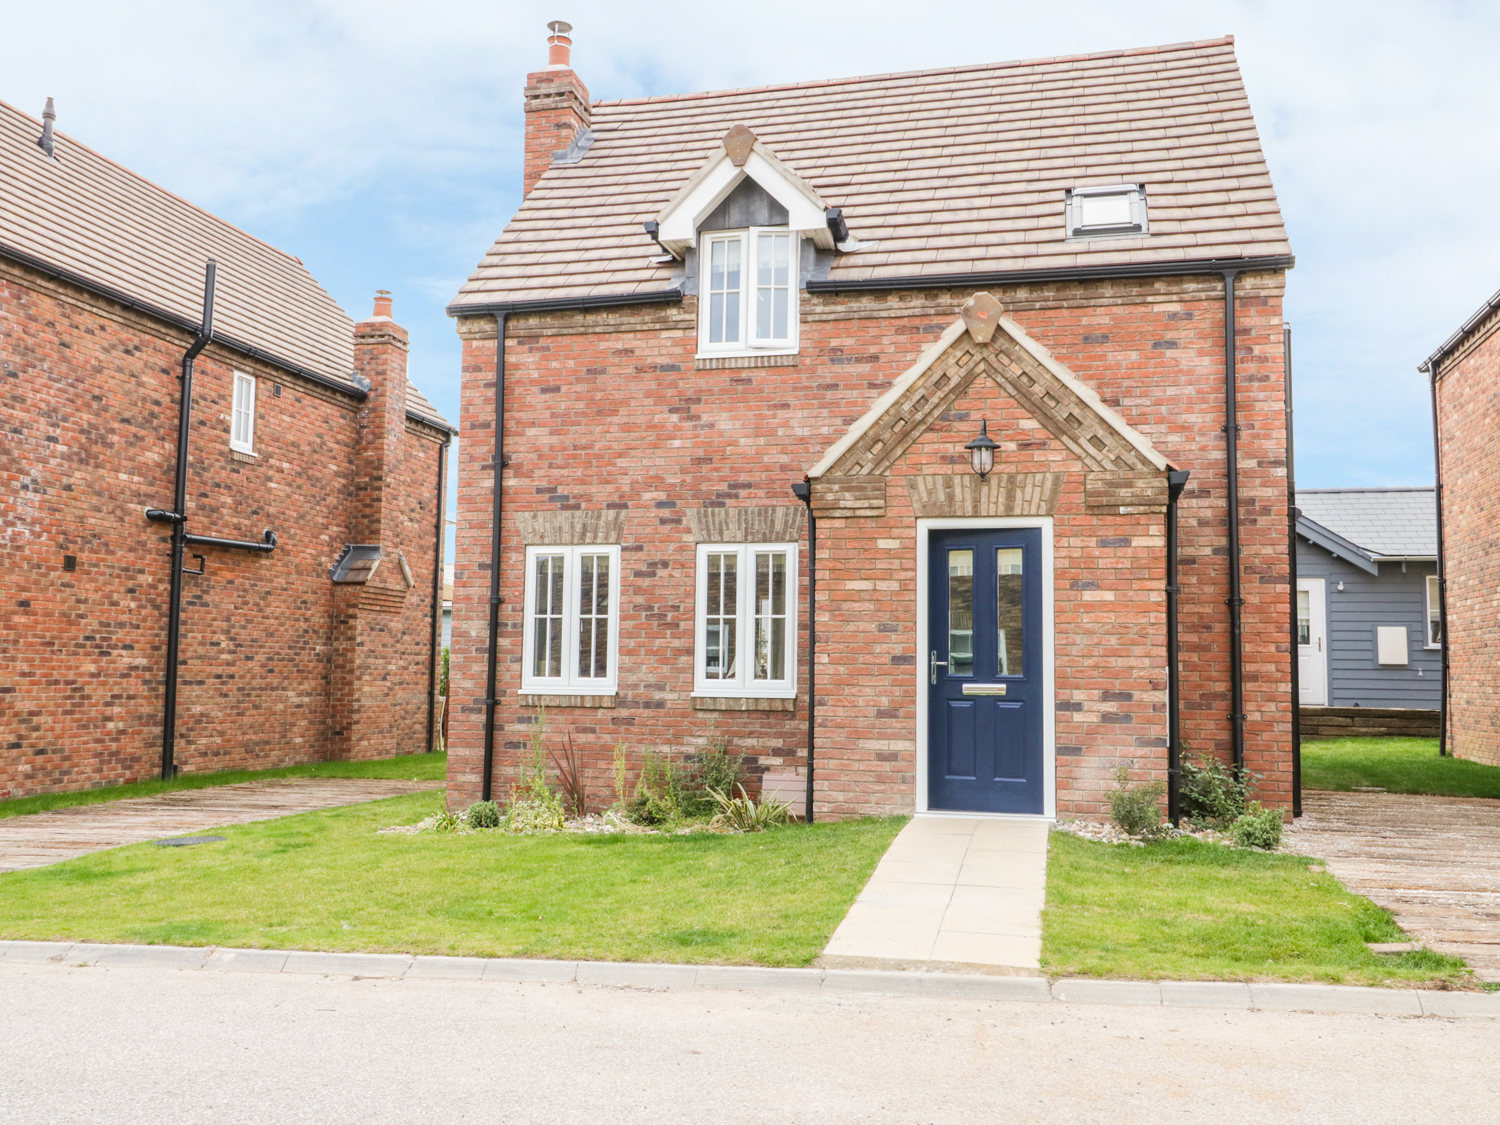 2 bedroom Cottage for rent in Filey